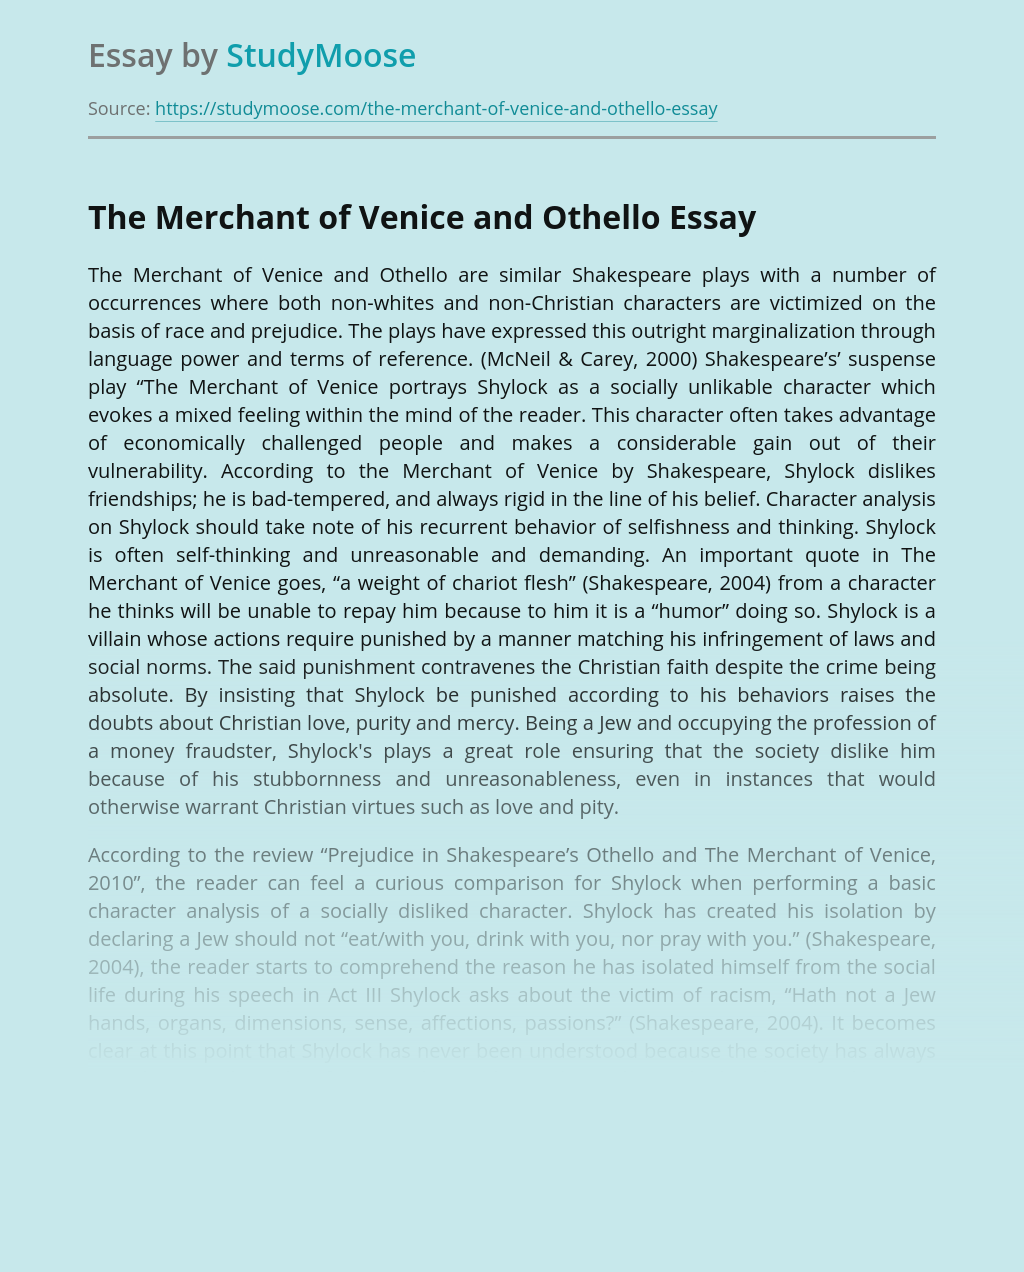 The Merchant of Venice and Othello